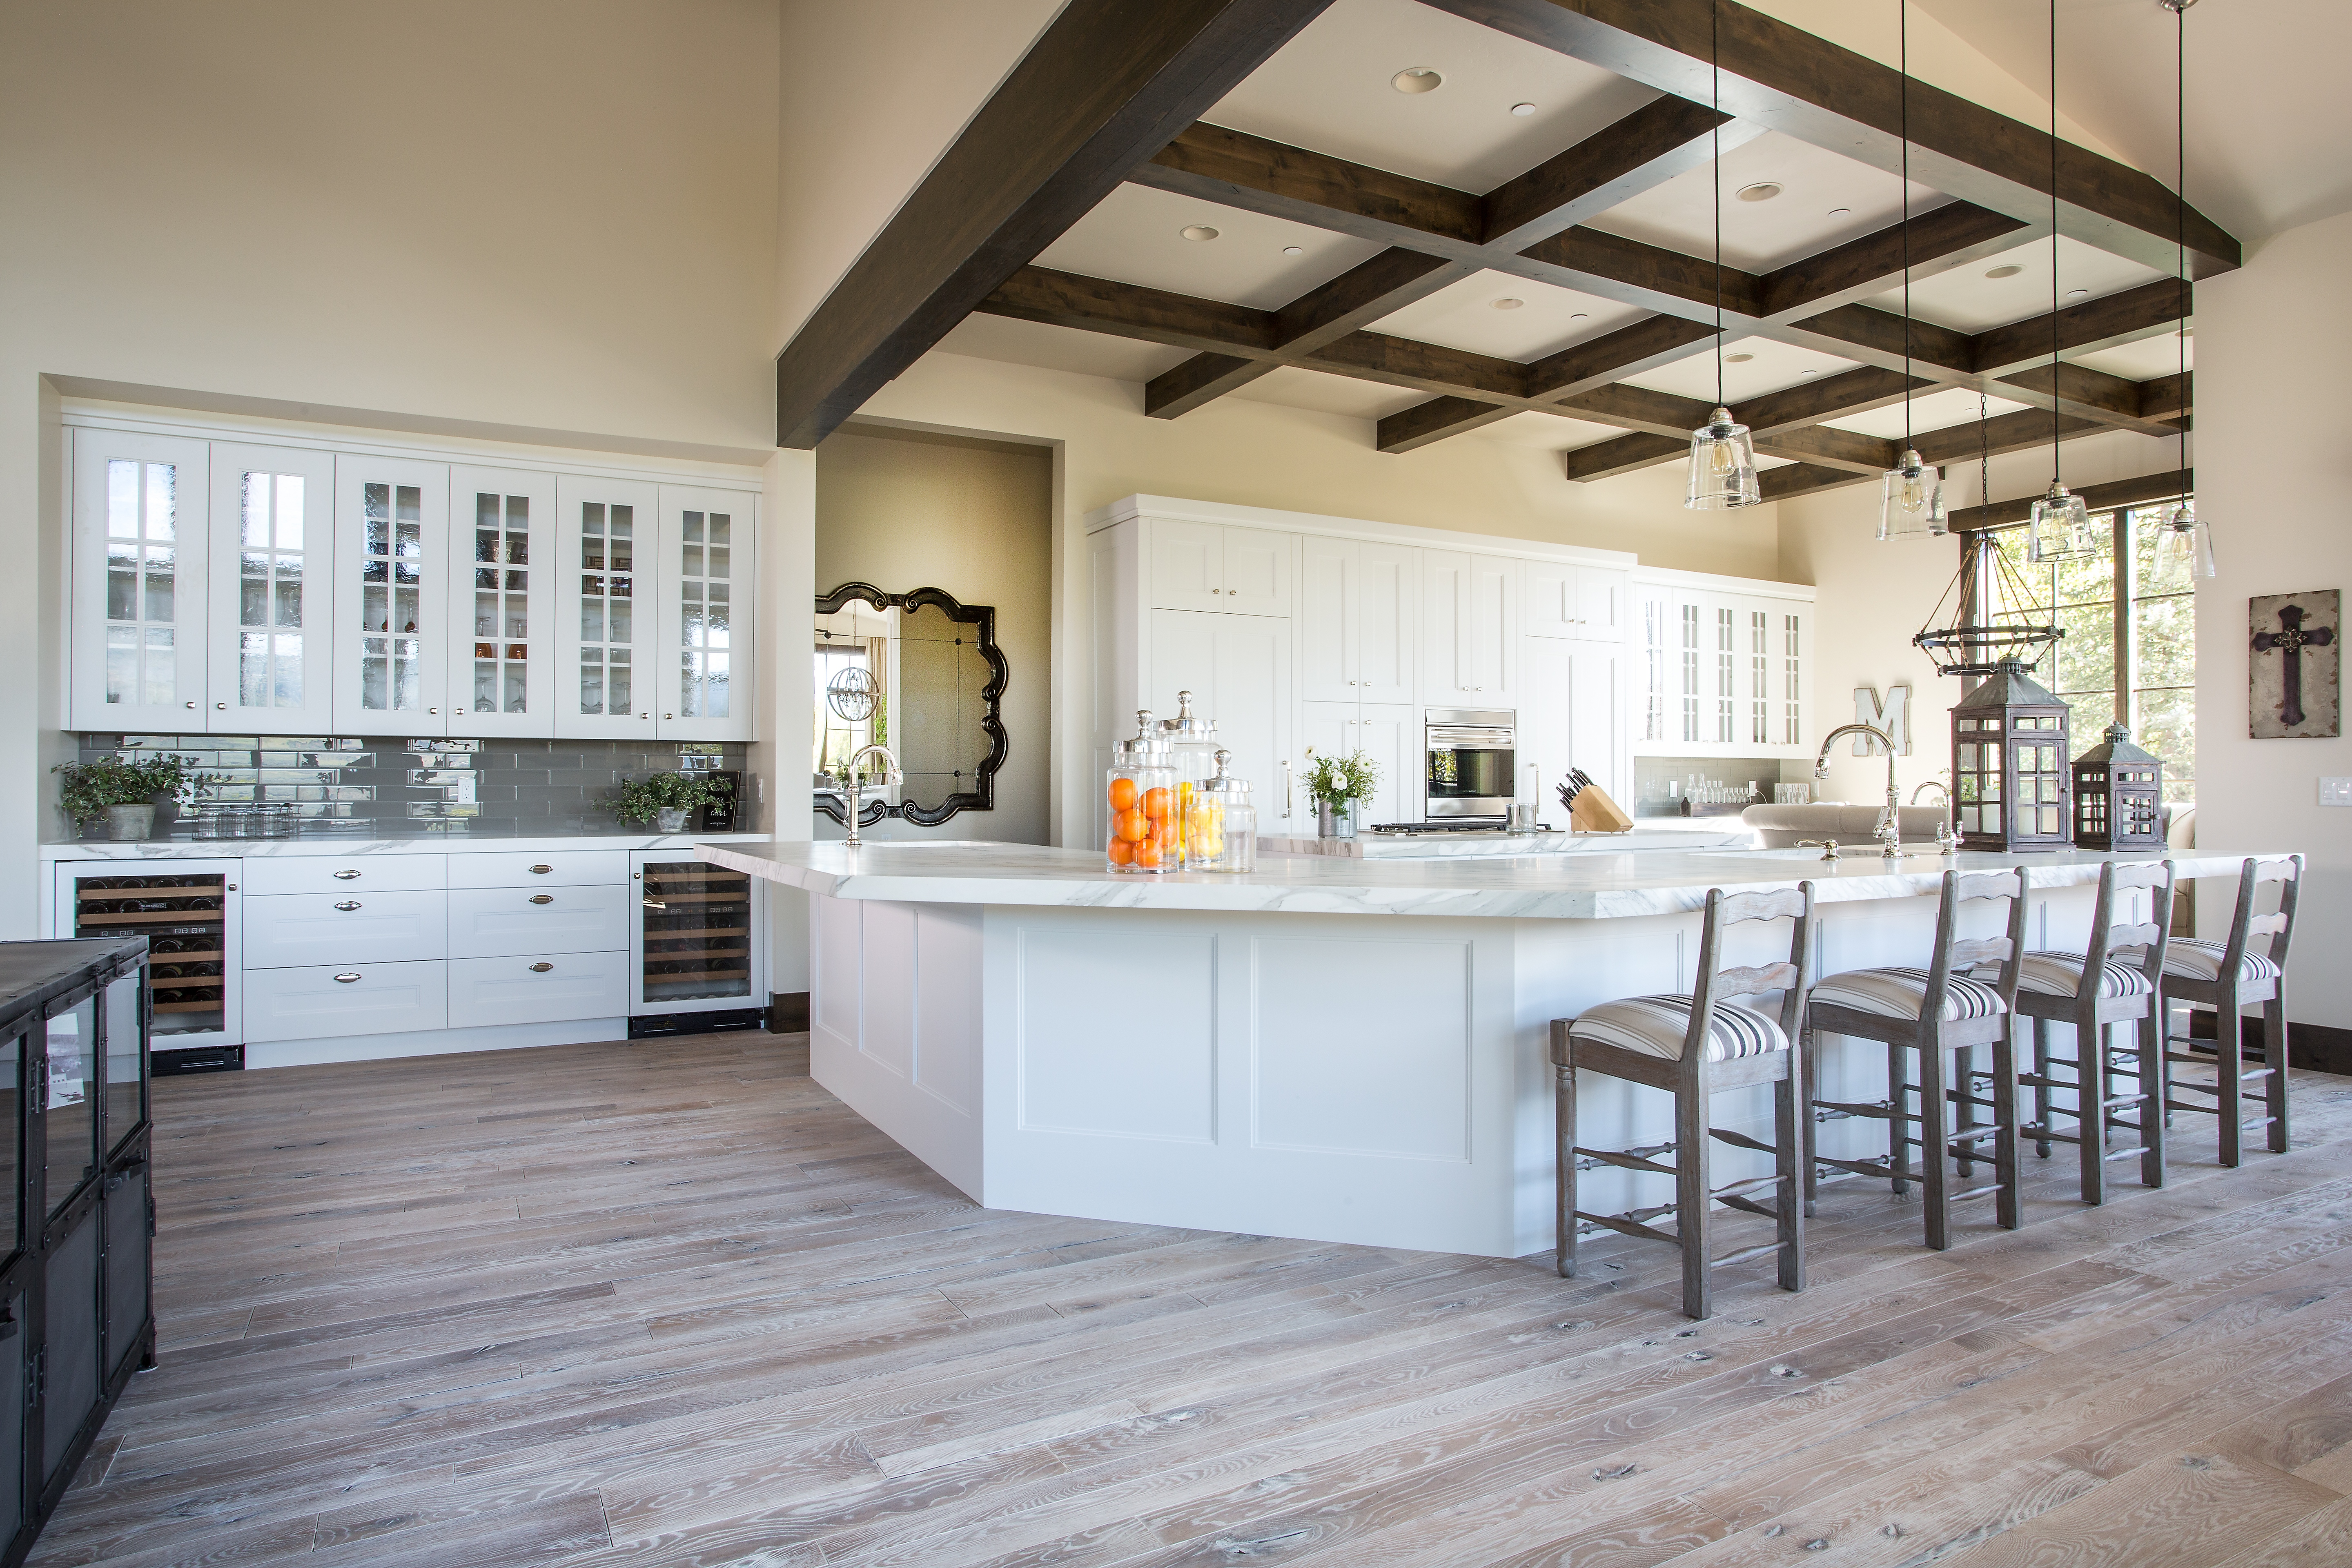 This Kitchen Has Everything You Could Want High End Appliances 2 Large Islands A Hidden Pantry Door That Leads To Walk In Must For